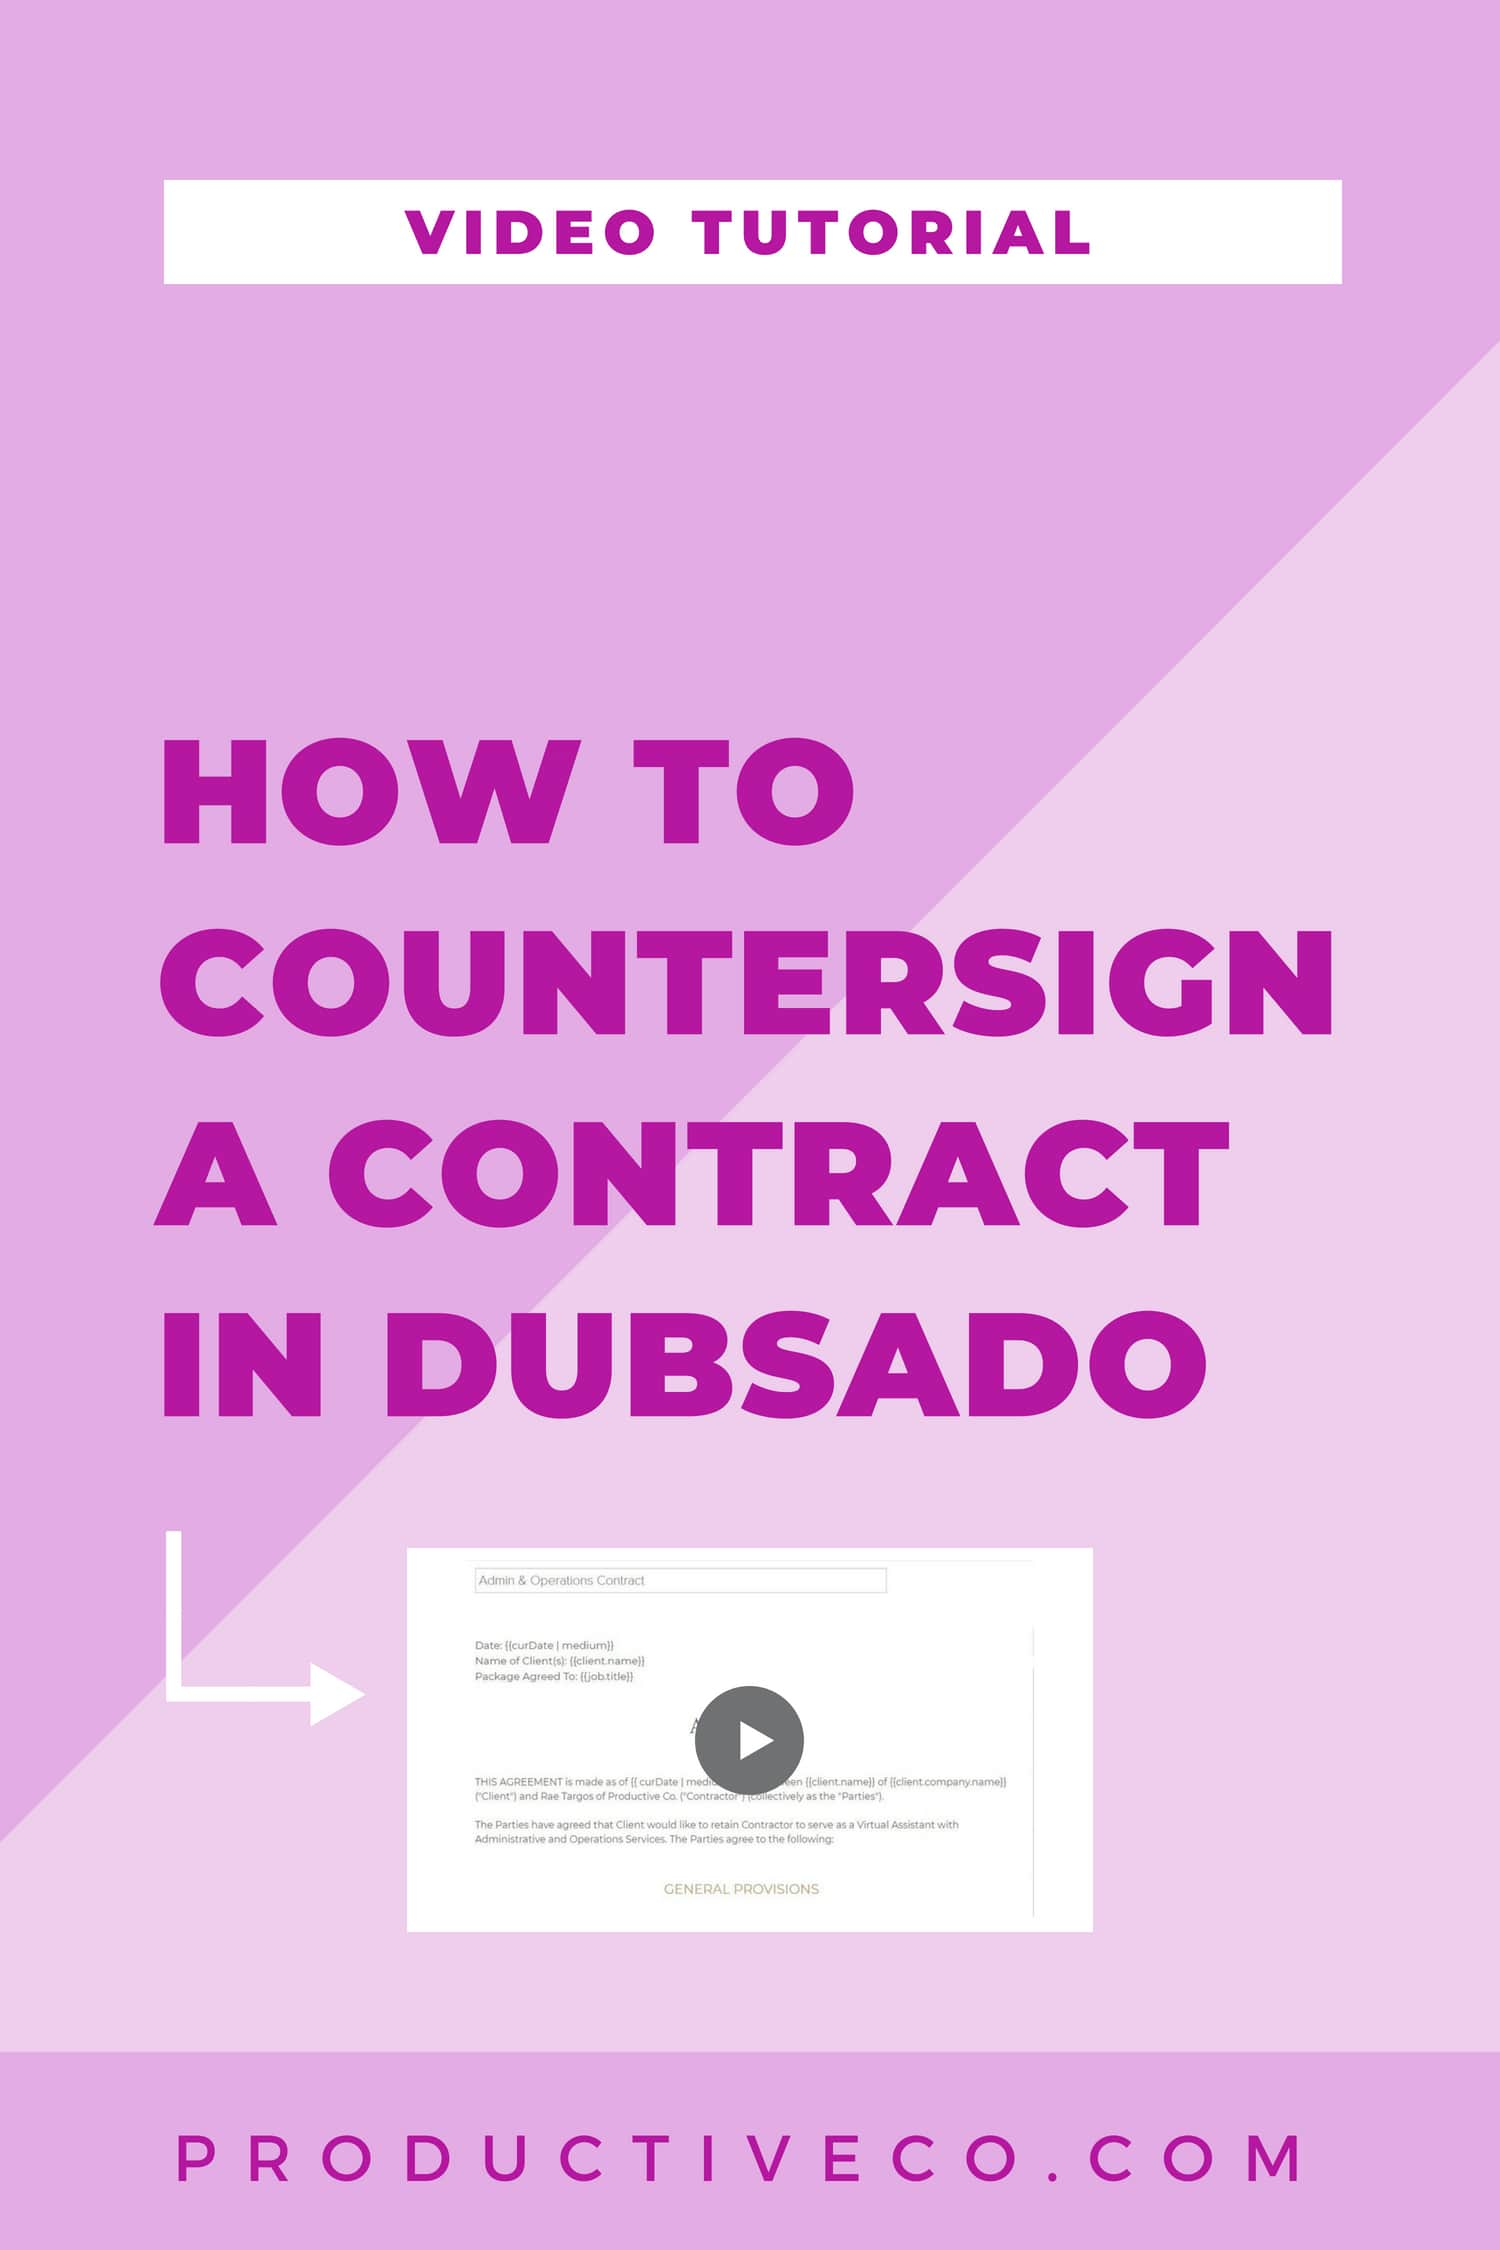 How to countersign a contract in Dubsado in 15 seconds or less.